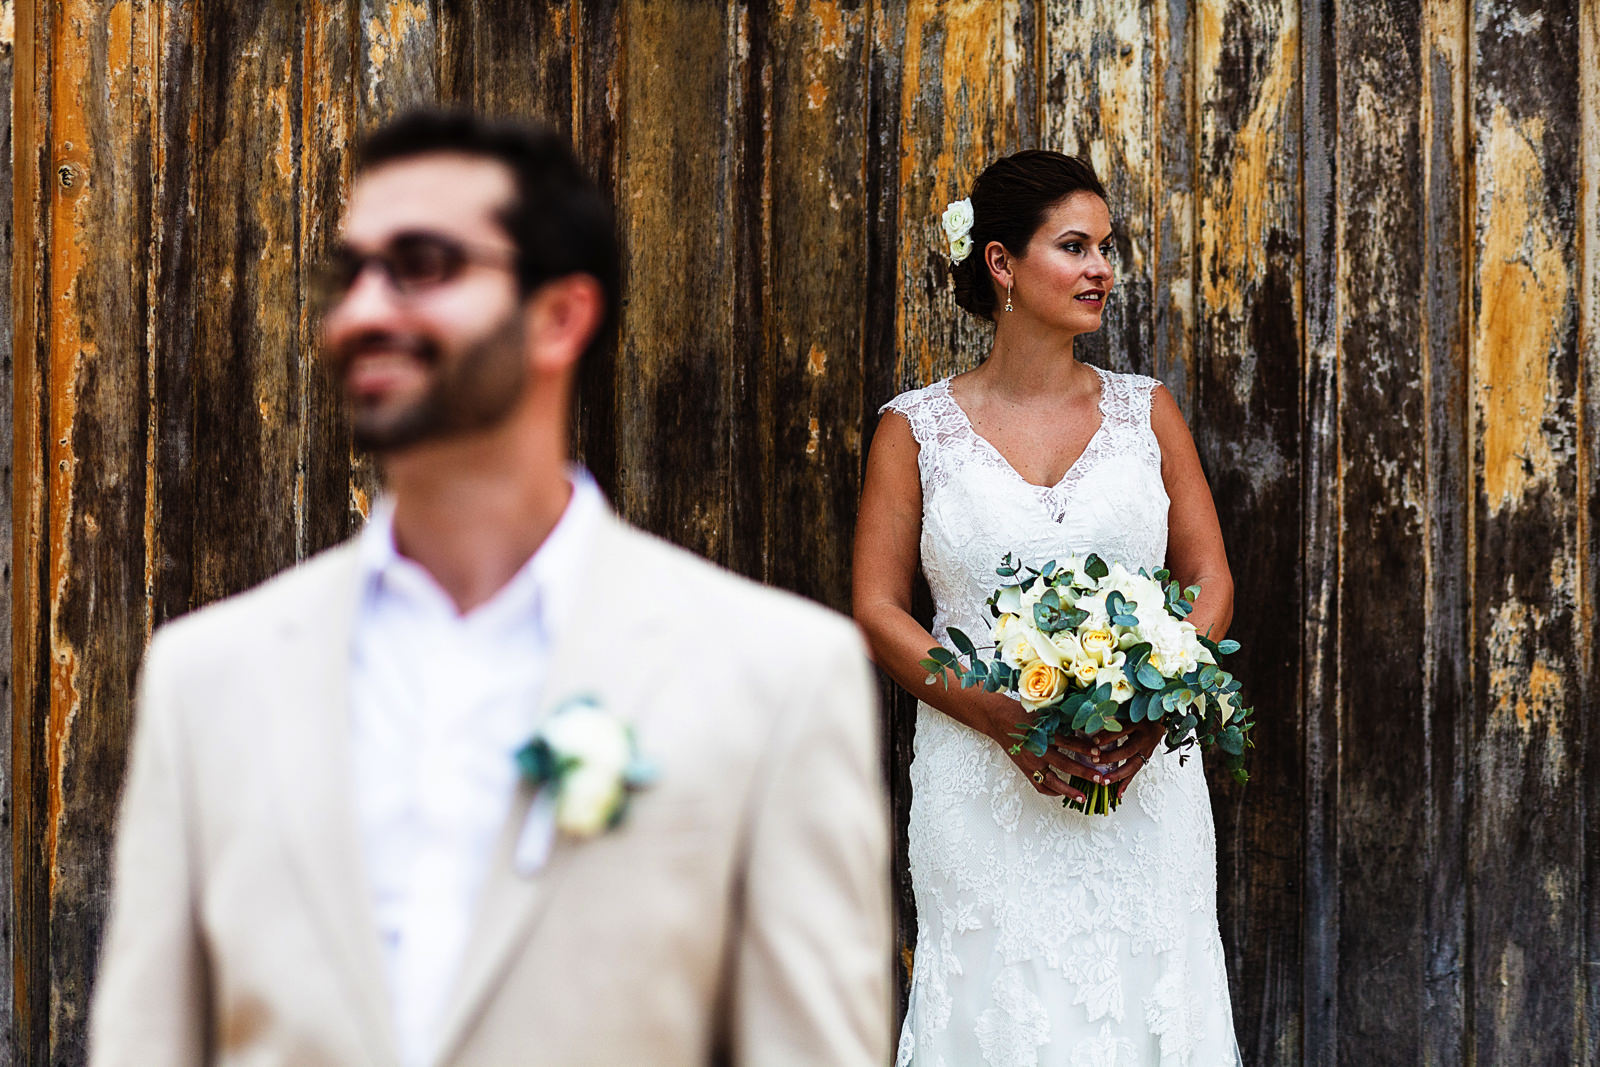 Portrait of a groom and bride on a door outside a tequila factory, groom in fore ground out of focus